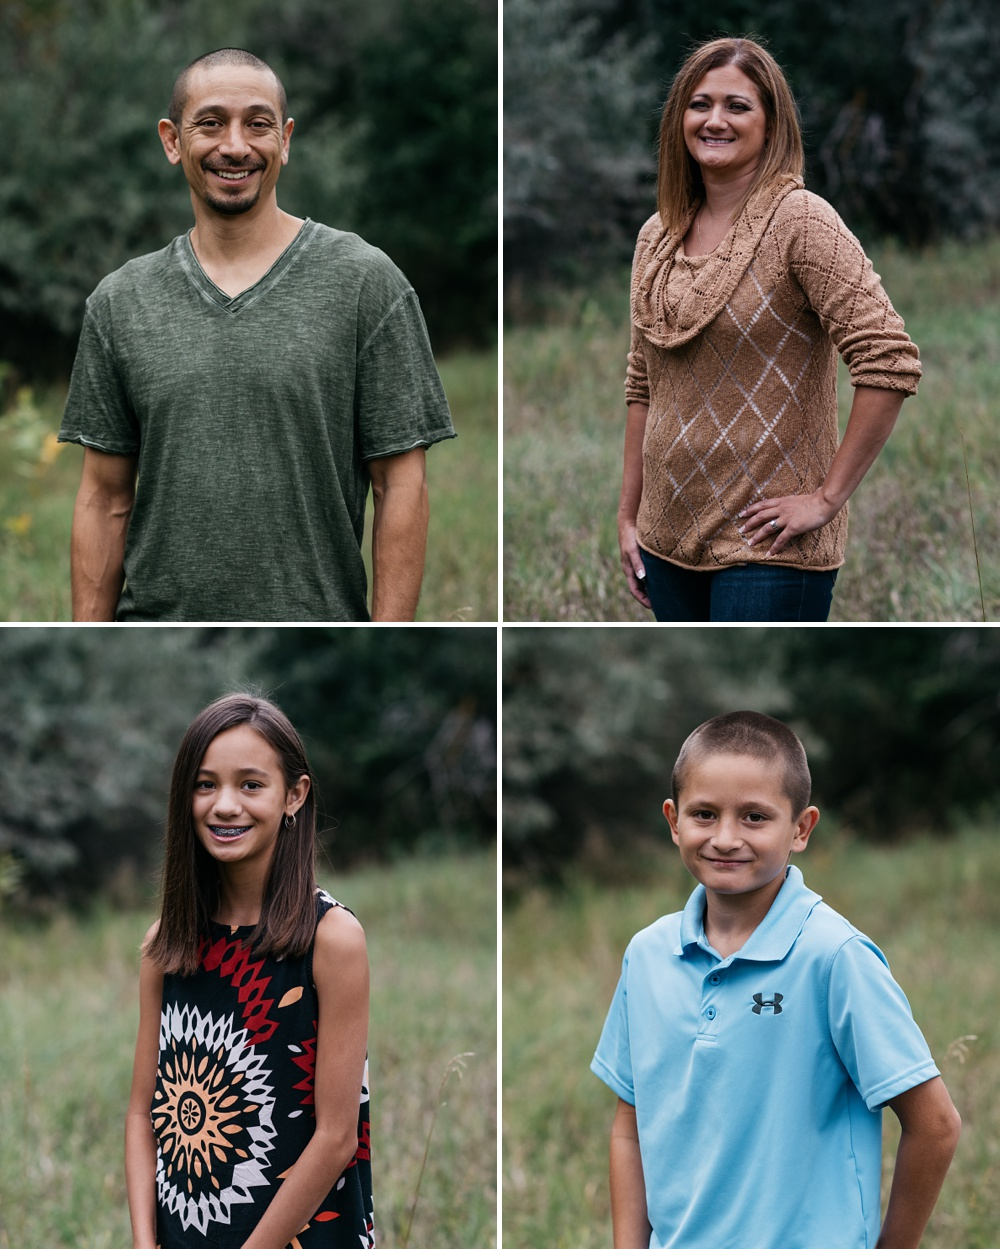 Head shots of a young family at Lee Martinez Park in Fort Collins, Colorado. Fall family portrait photography by Sonja Salzburg of Sonja K Photography.